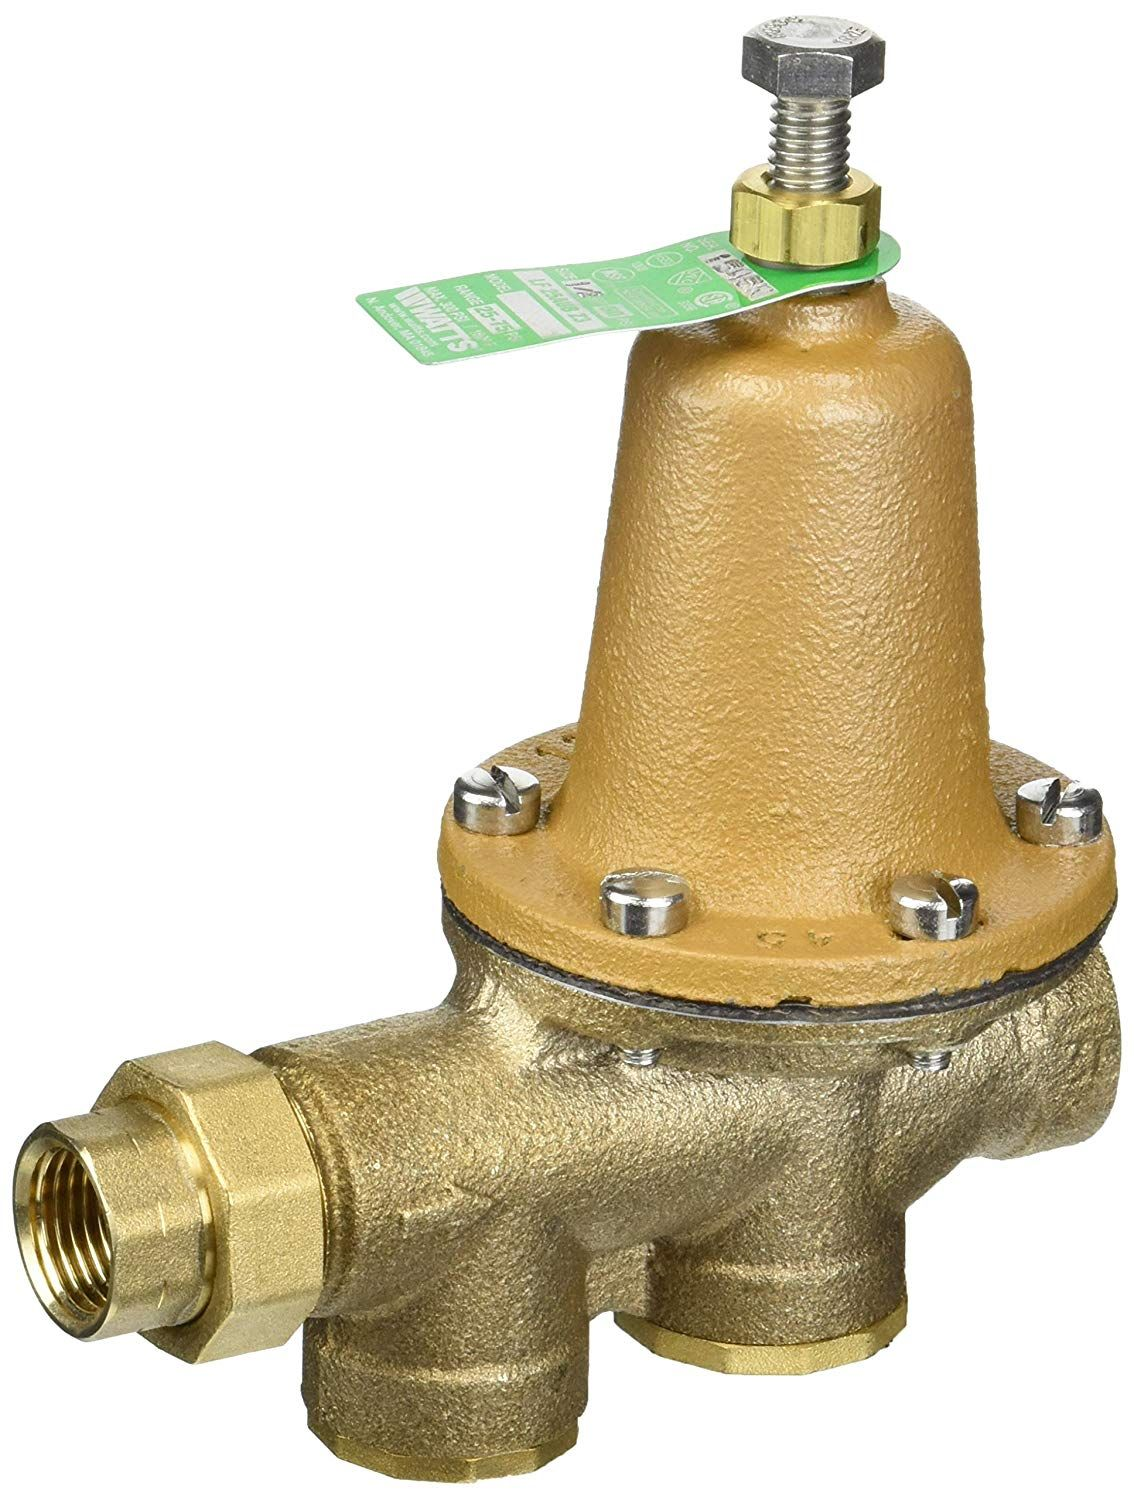 Watts Water Technologies Pressure Reducing Valve 1 2 By 1 2 Fip Lead Free To View Further For This Item Visit The Image Lin Lead Free Technology Valve